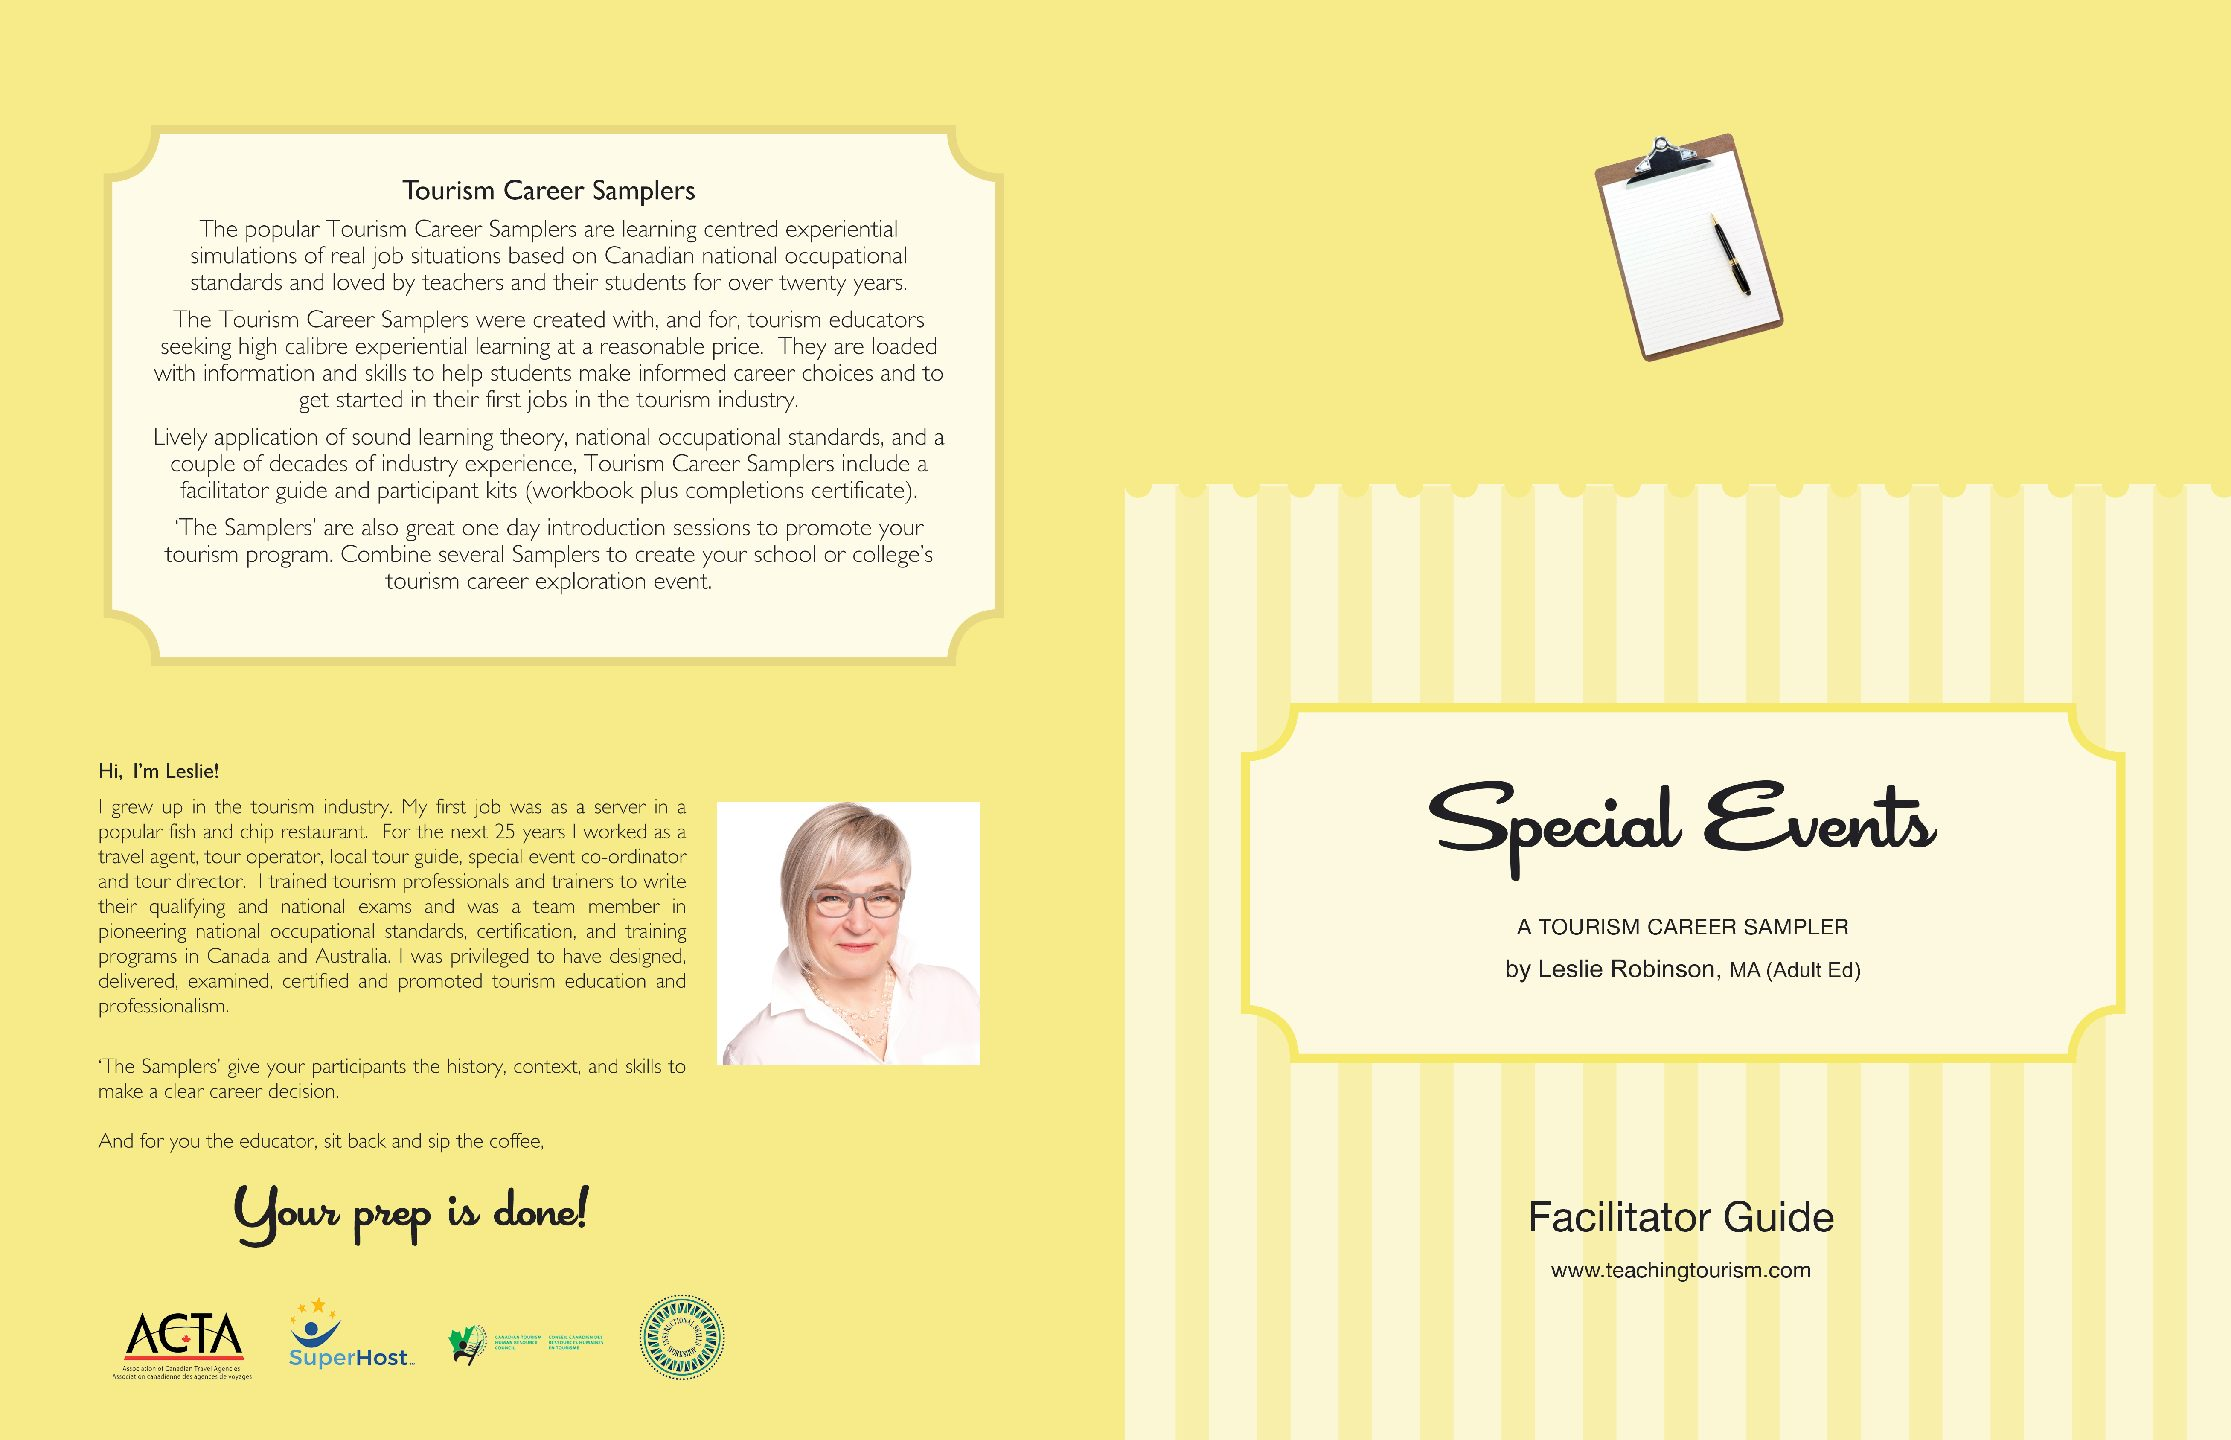 Special Events Coordinator Facilitator Guide and Workbook